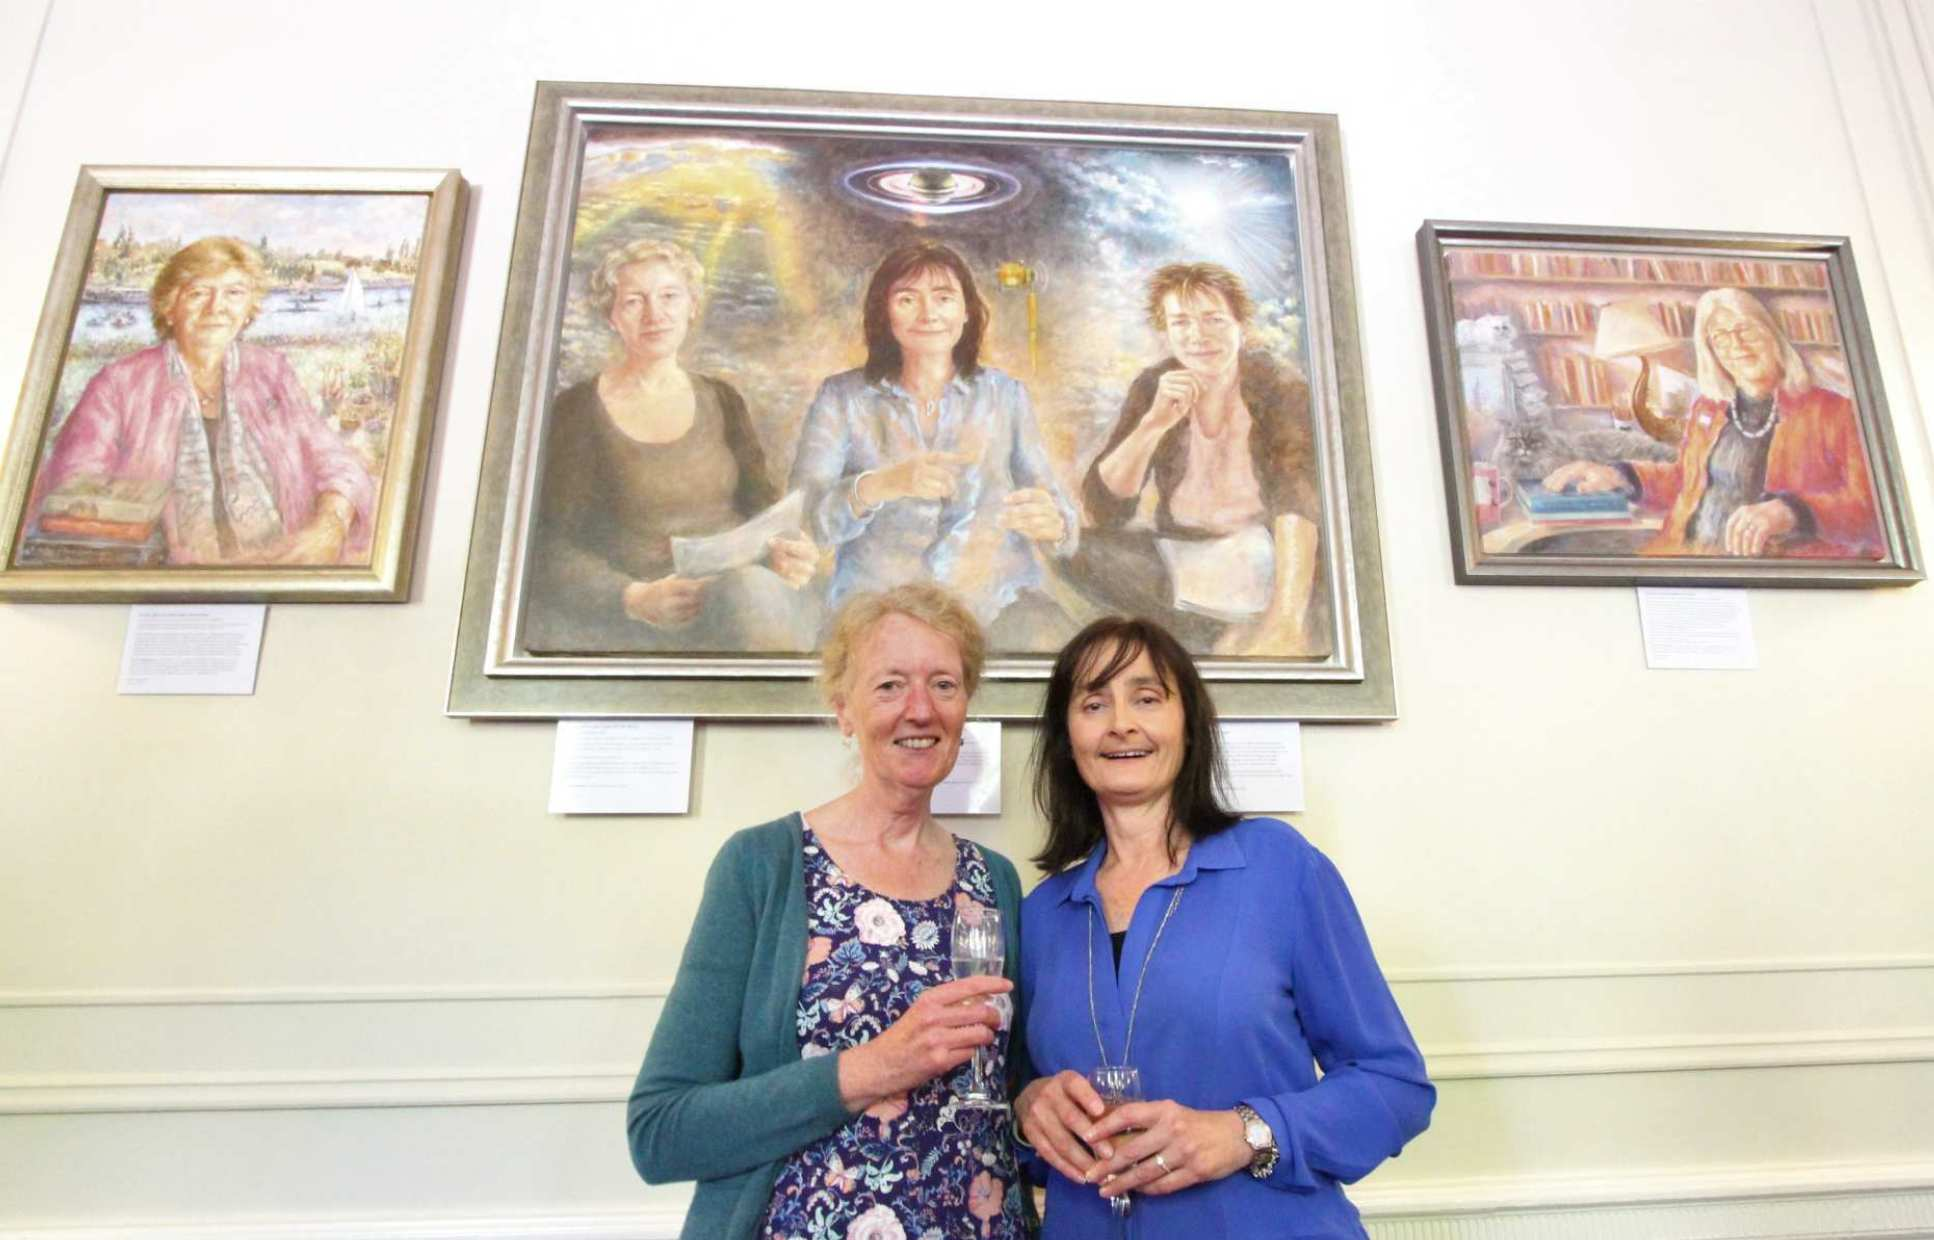 Professor Joanna Haigh (left) and Professor Michele Dougherty (right) in front of their new portrait